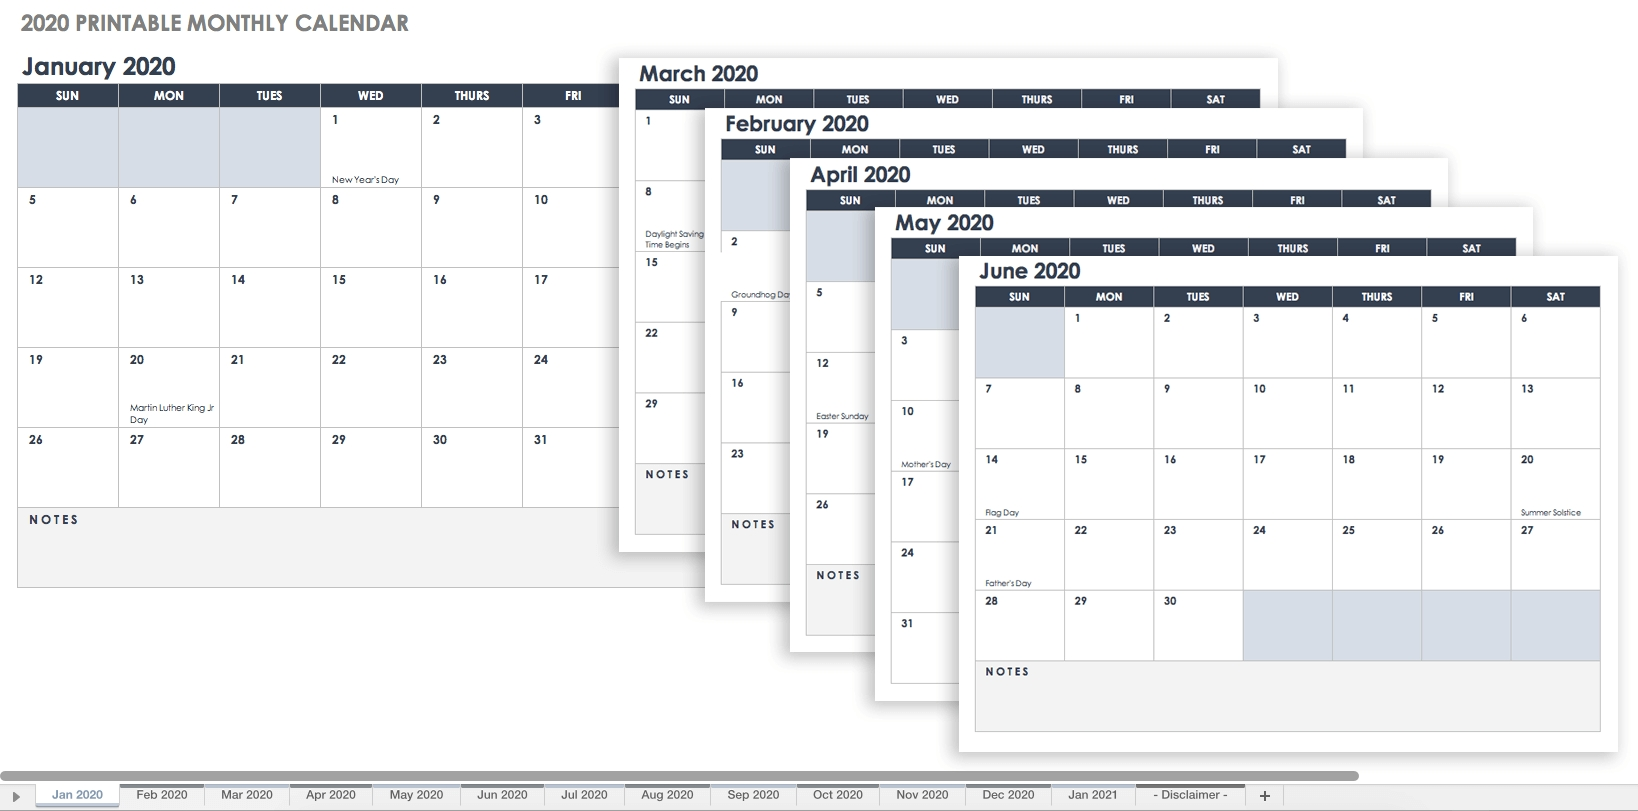 15 Free Monthly Calendar Templates | Smartsheet with regard to Printable Monthly Calendar Planner Template